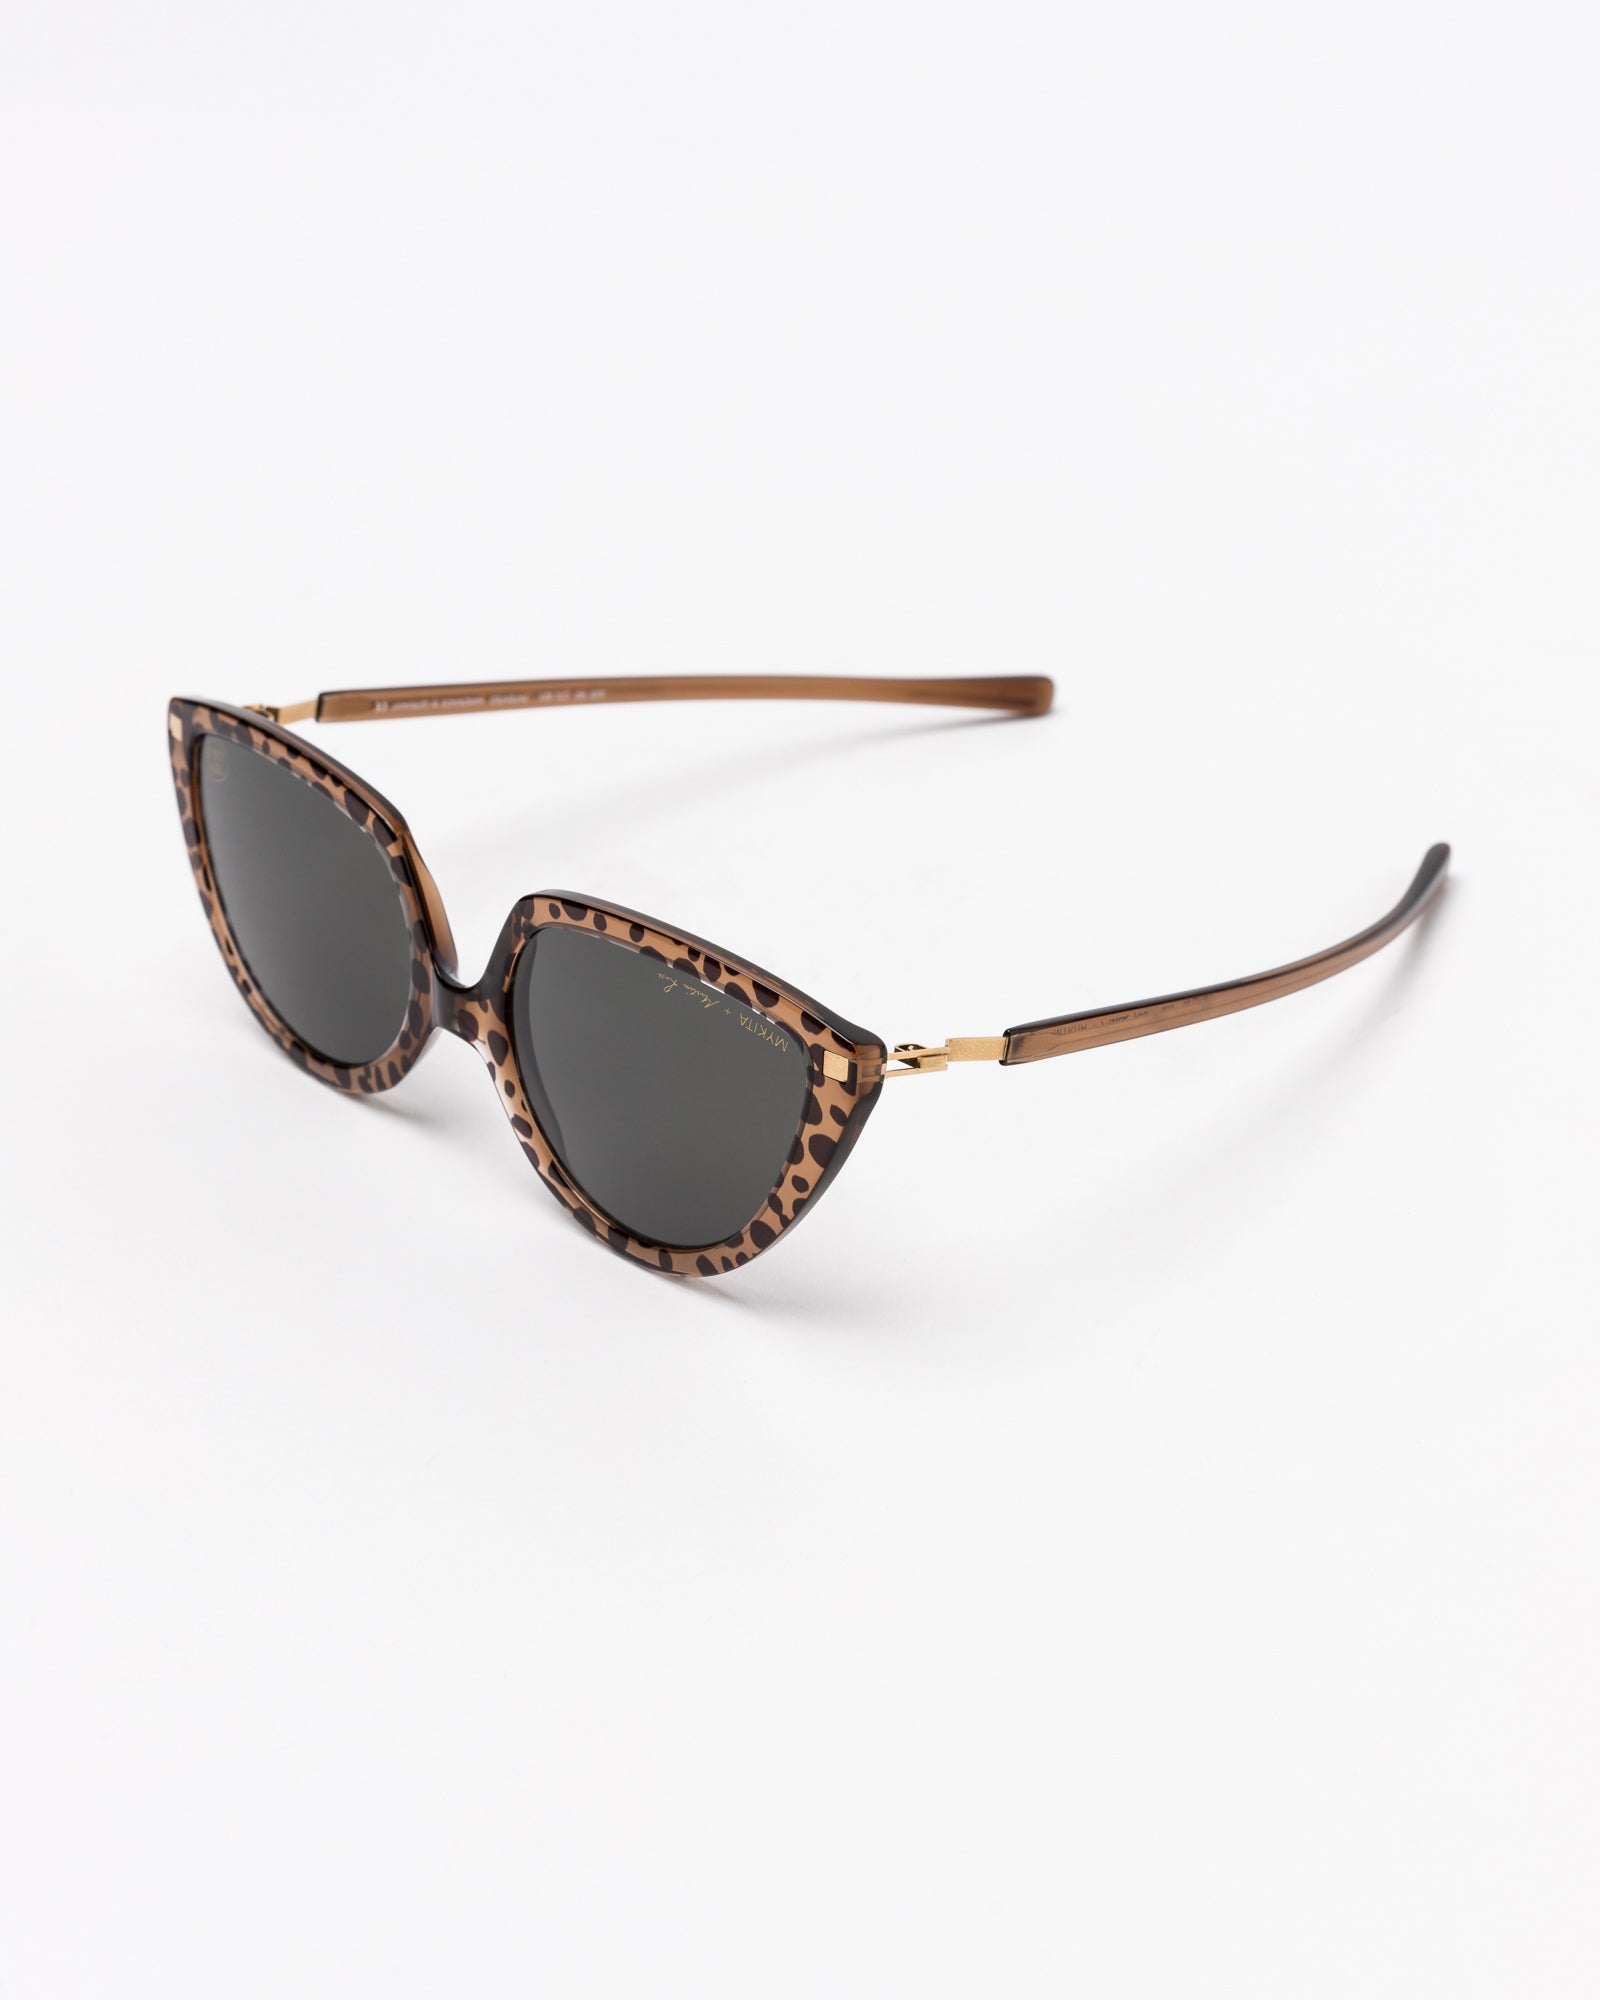 Mykita x Martine Rose Dark Gray Solid in Topaz Leopard